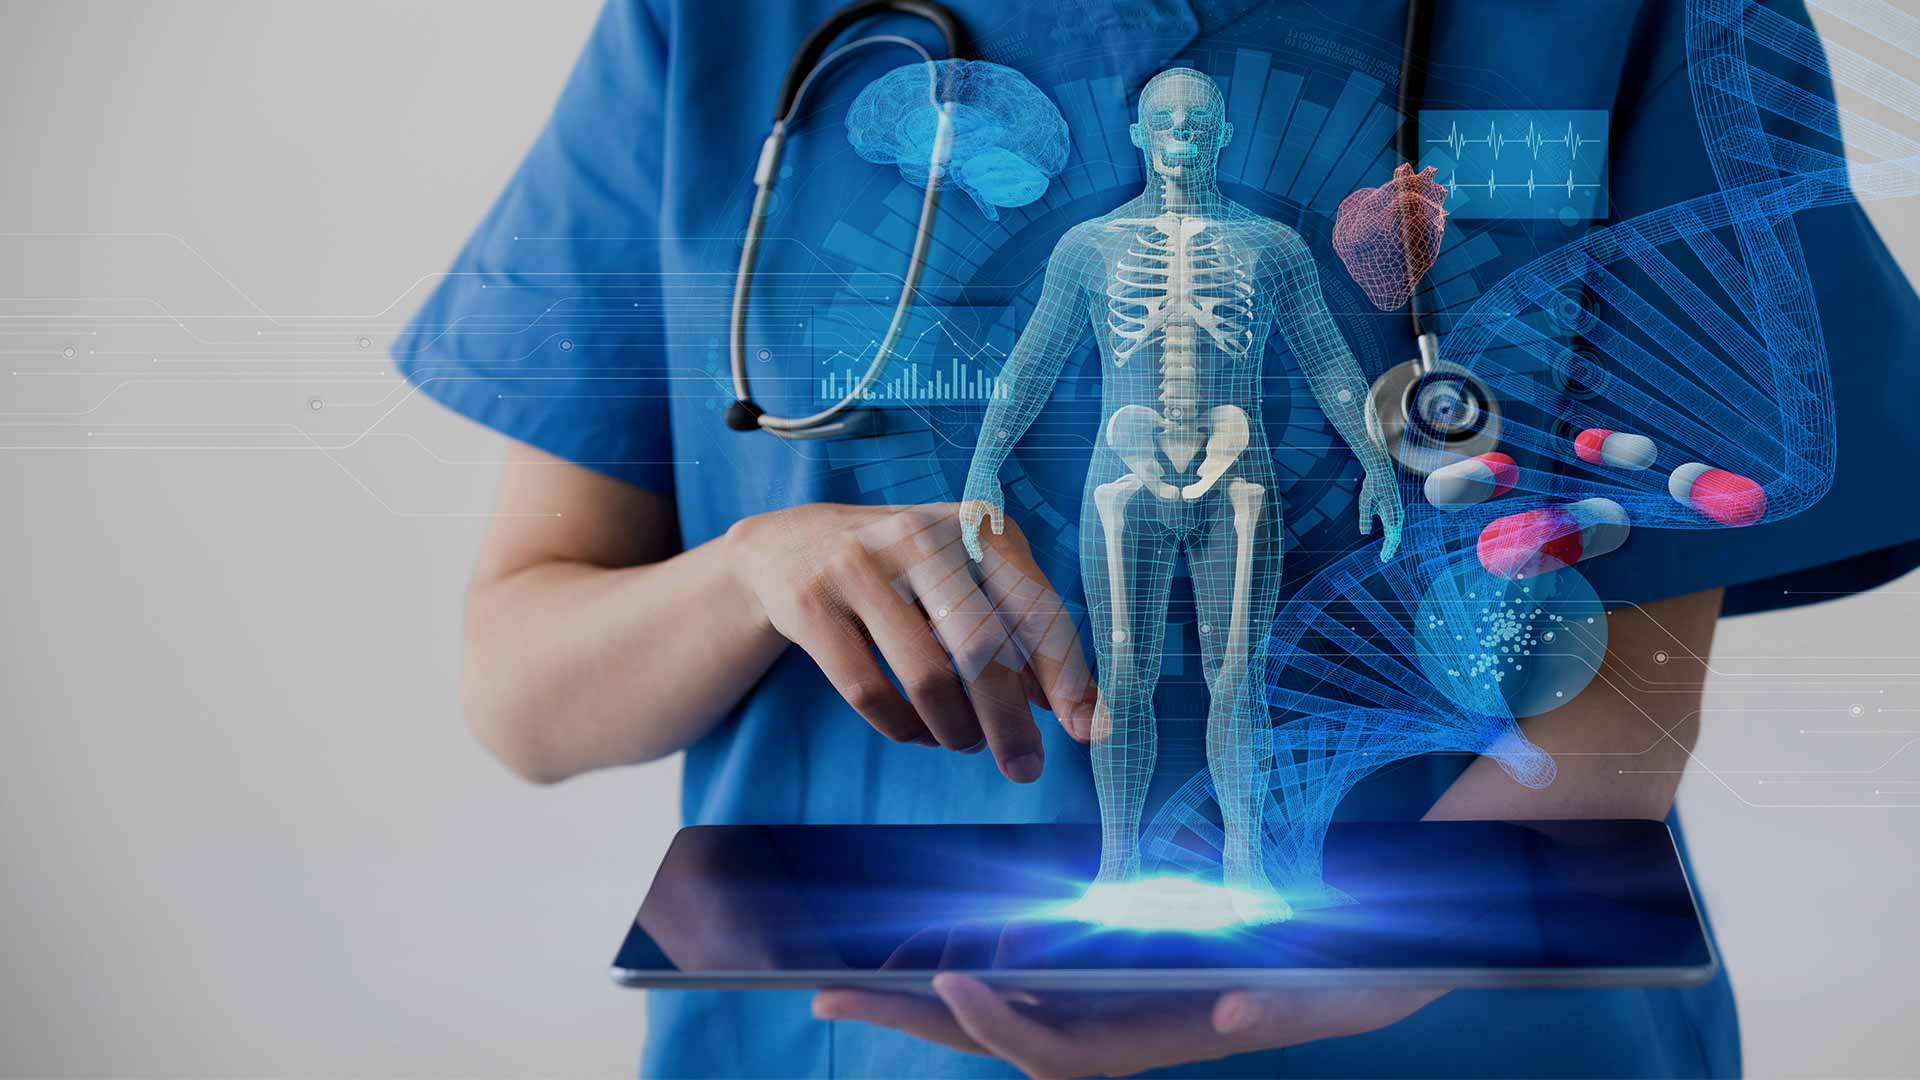 b2efbe75f74d The Many Ways Virtual Reality Promises to Improve How We Care for Our Health